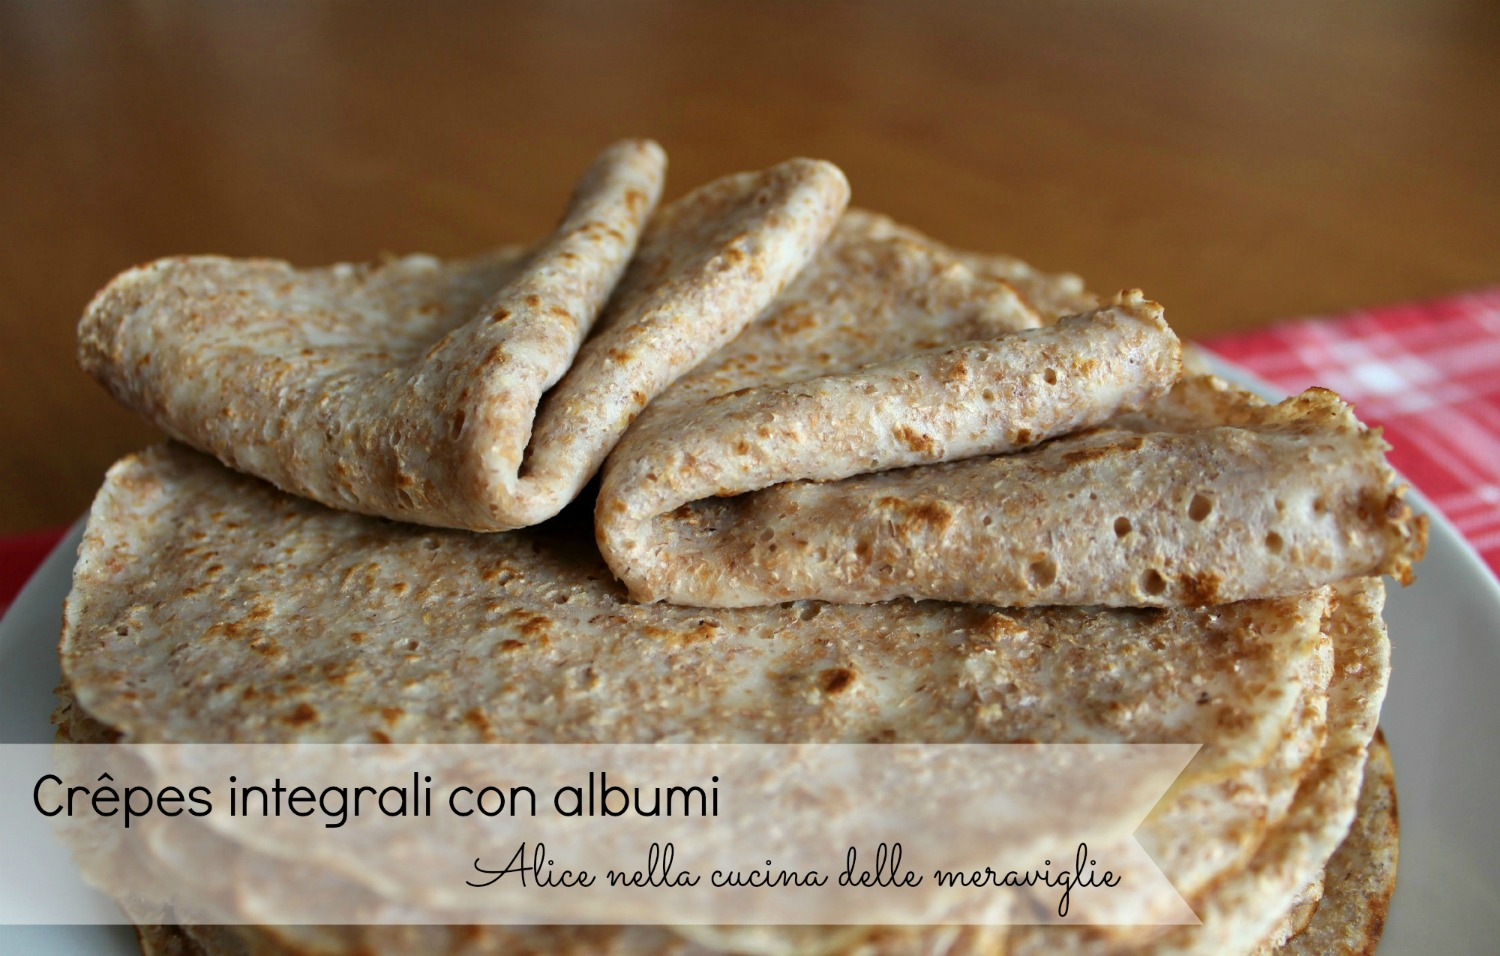 Ricetta crepes integrali salate